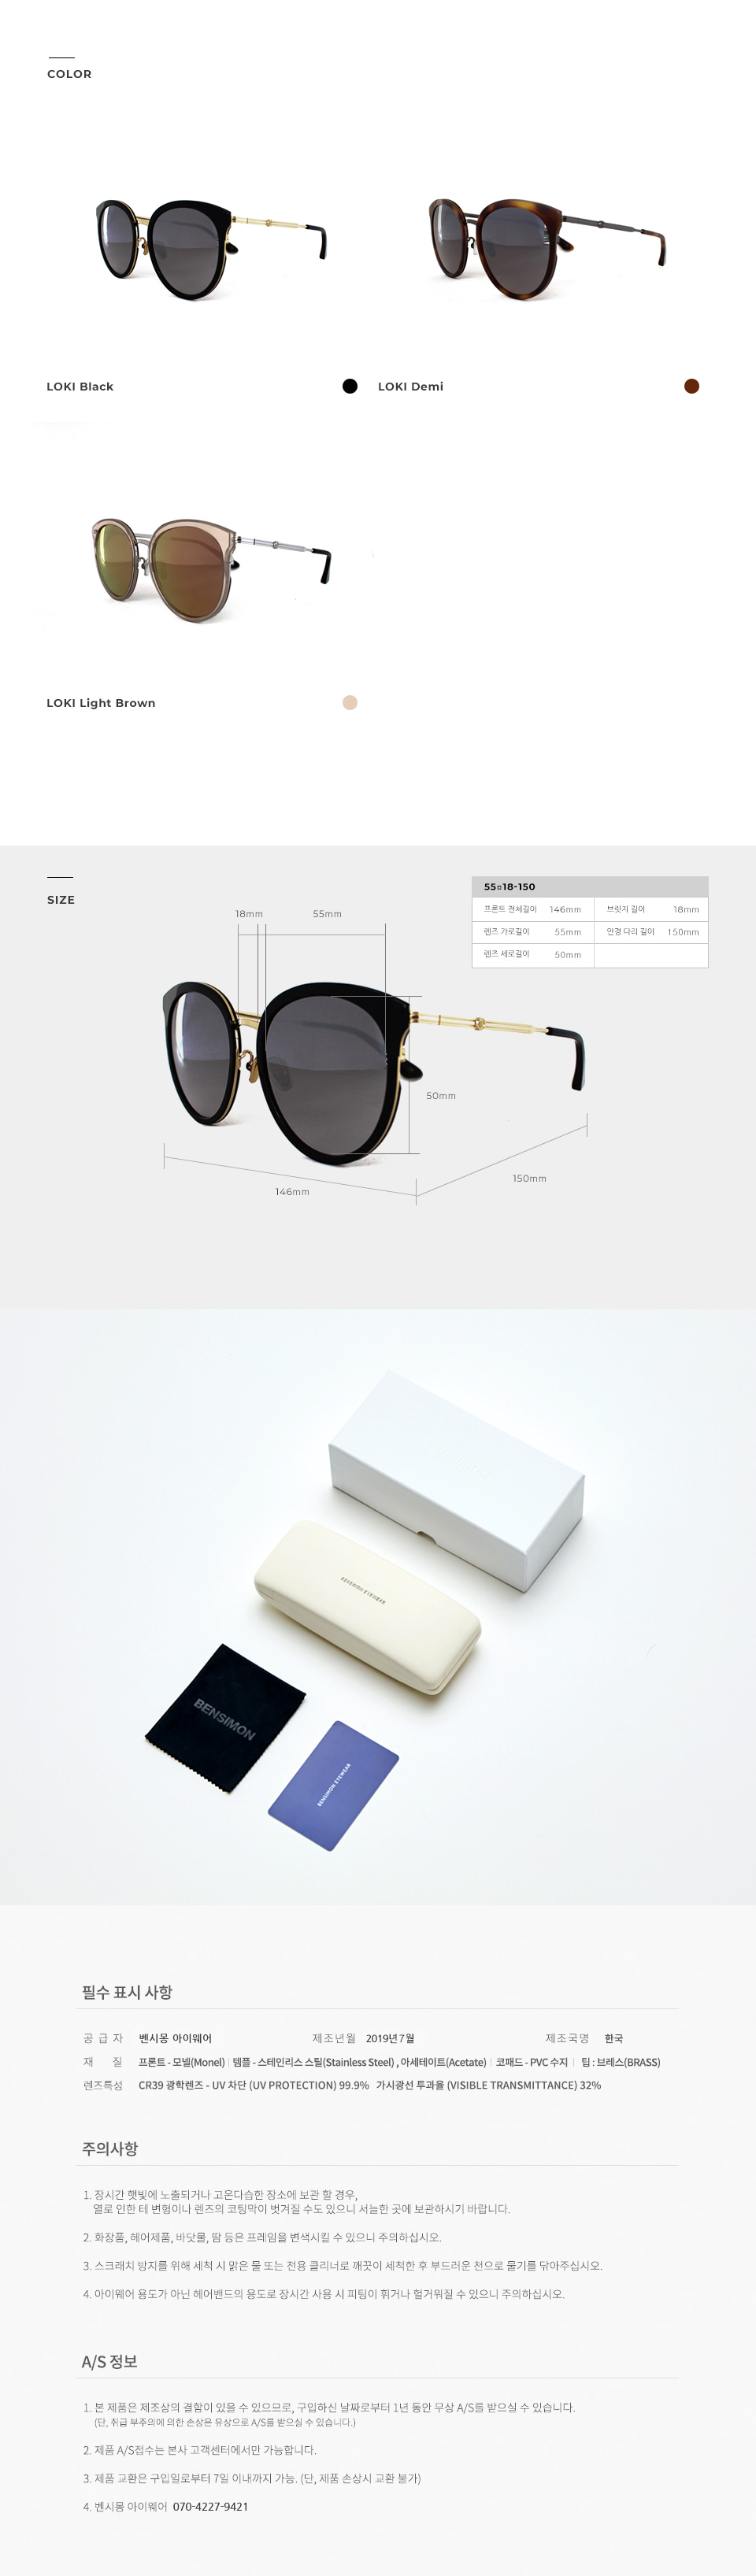 벤시몽아이웨어(BENSIMON EYEWEAR) BENSIMON LOKI Light Brown